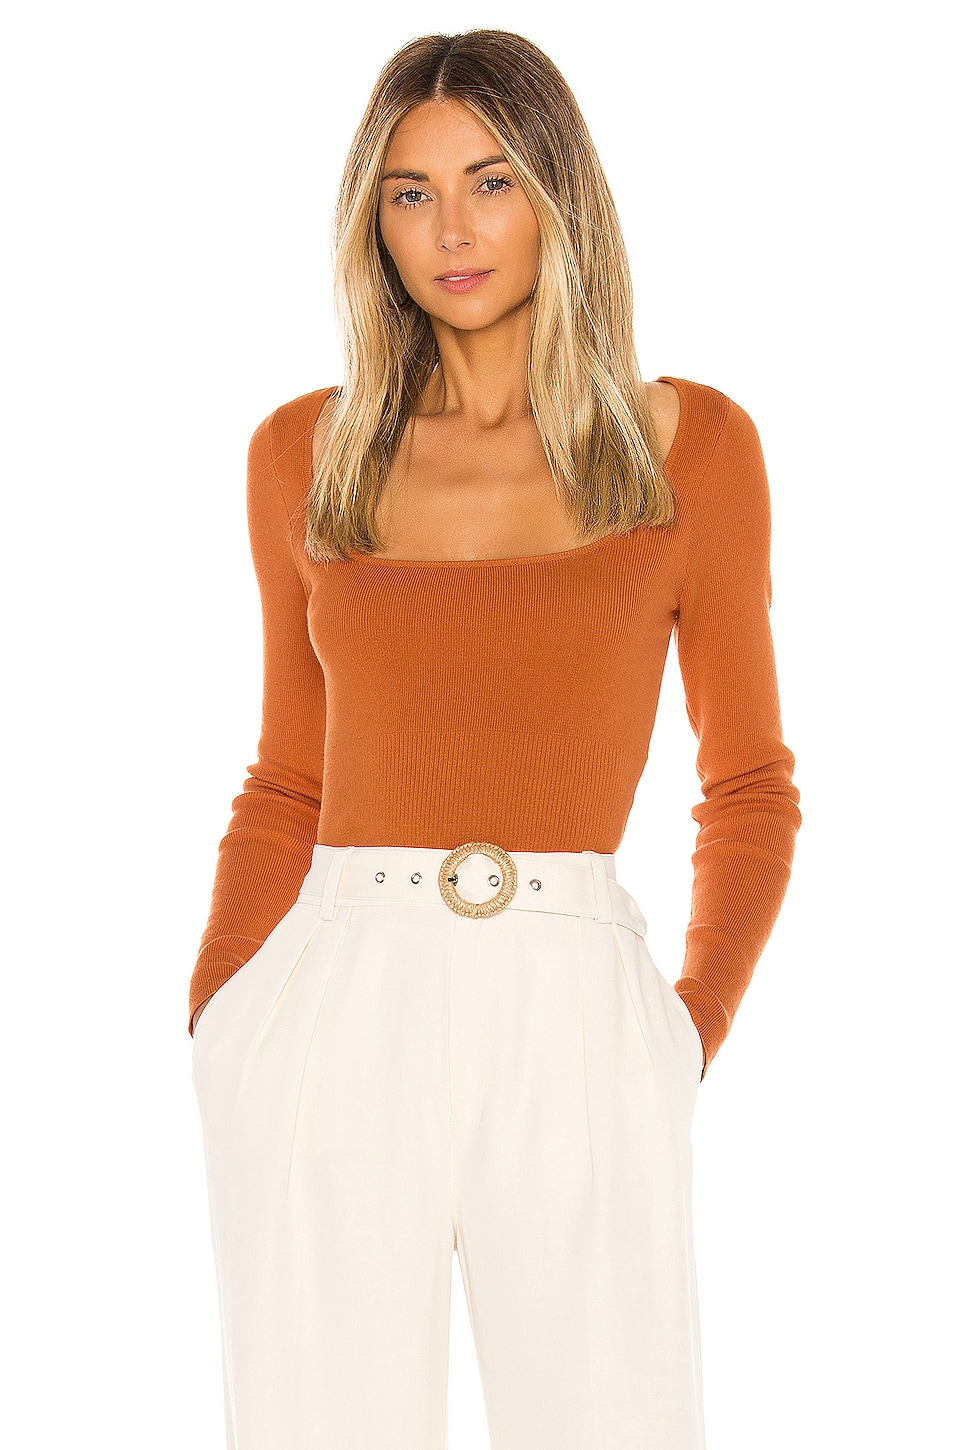 L'Academie Anita Sweater in Rust Orange